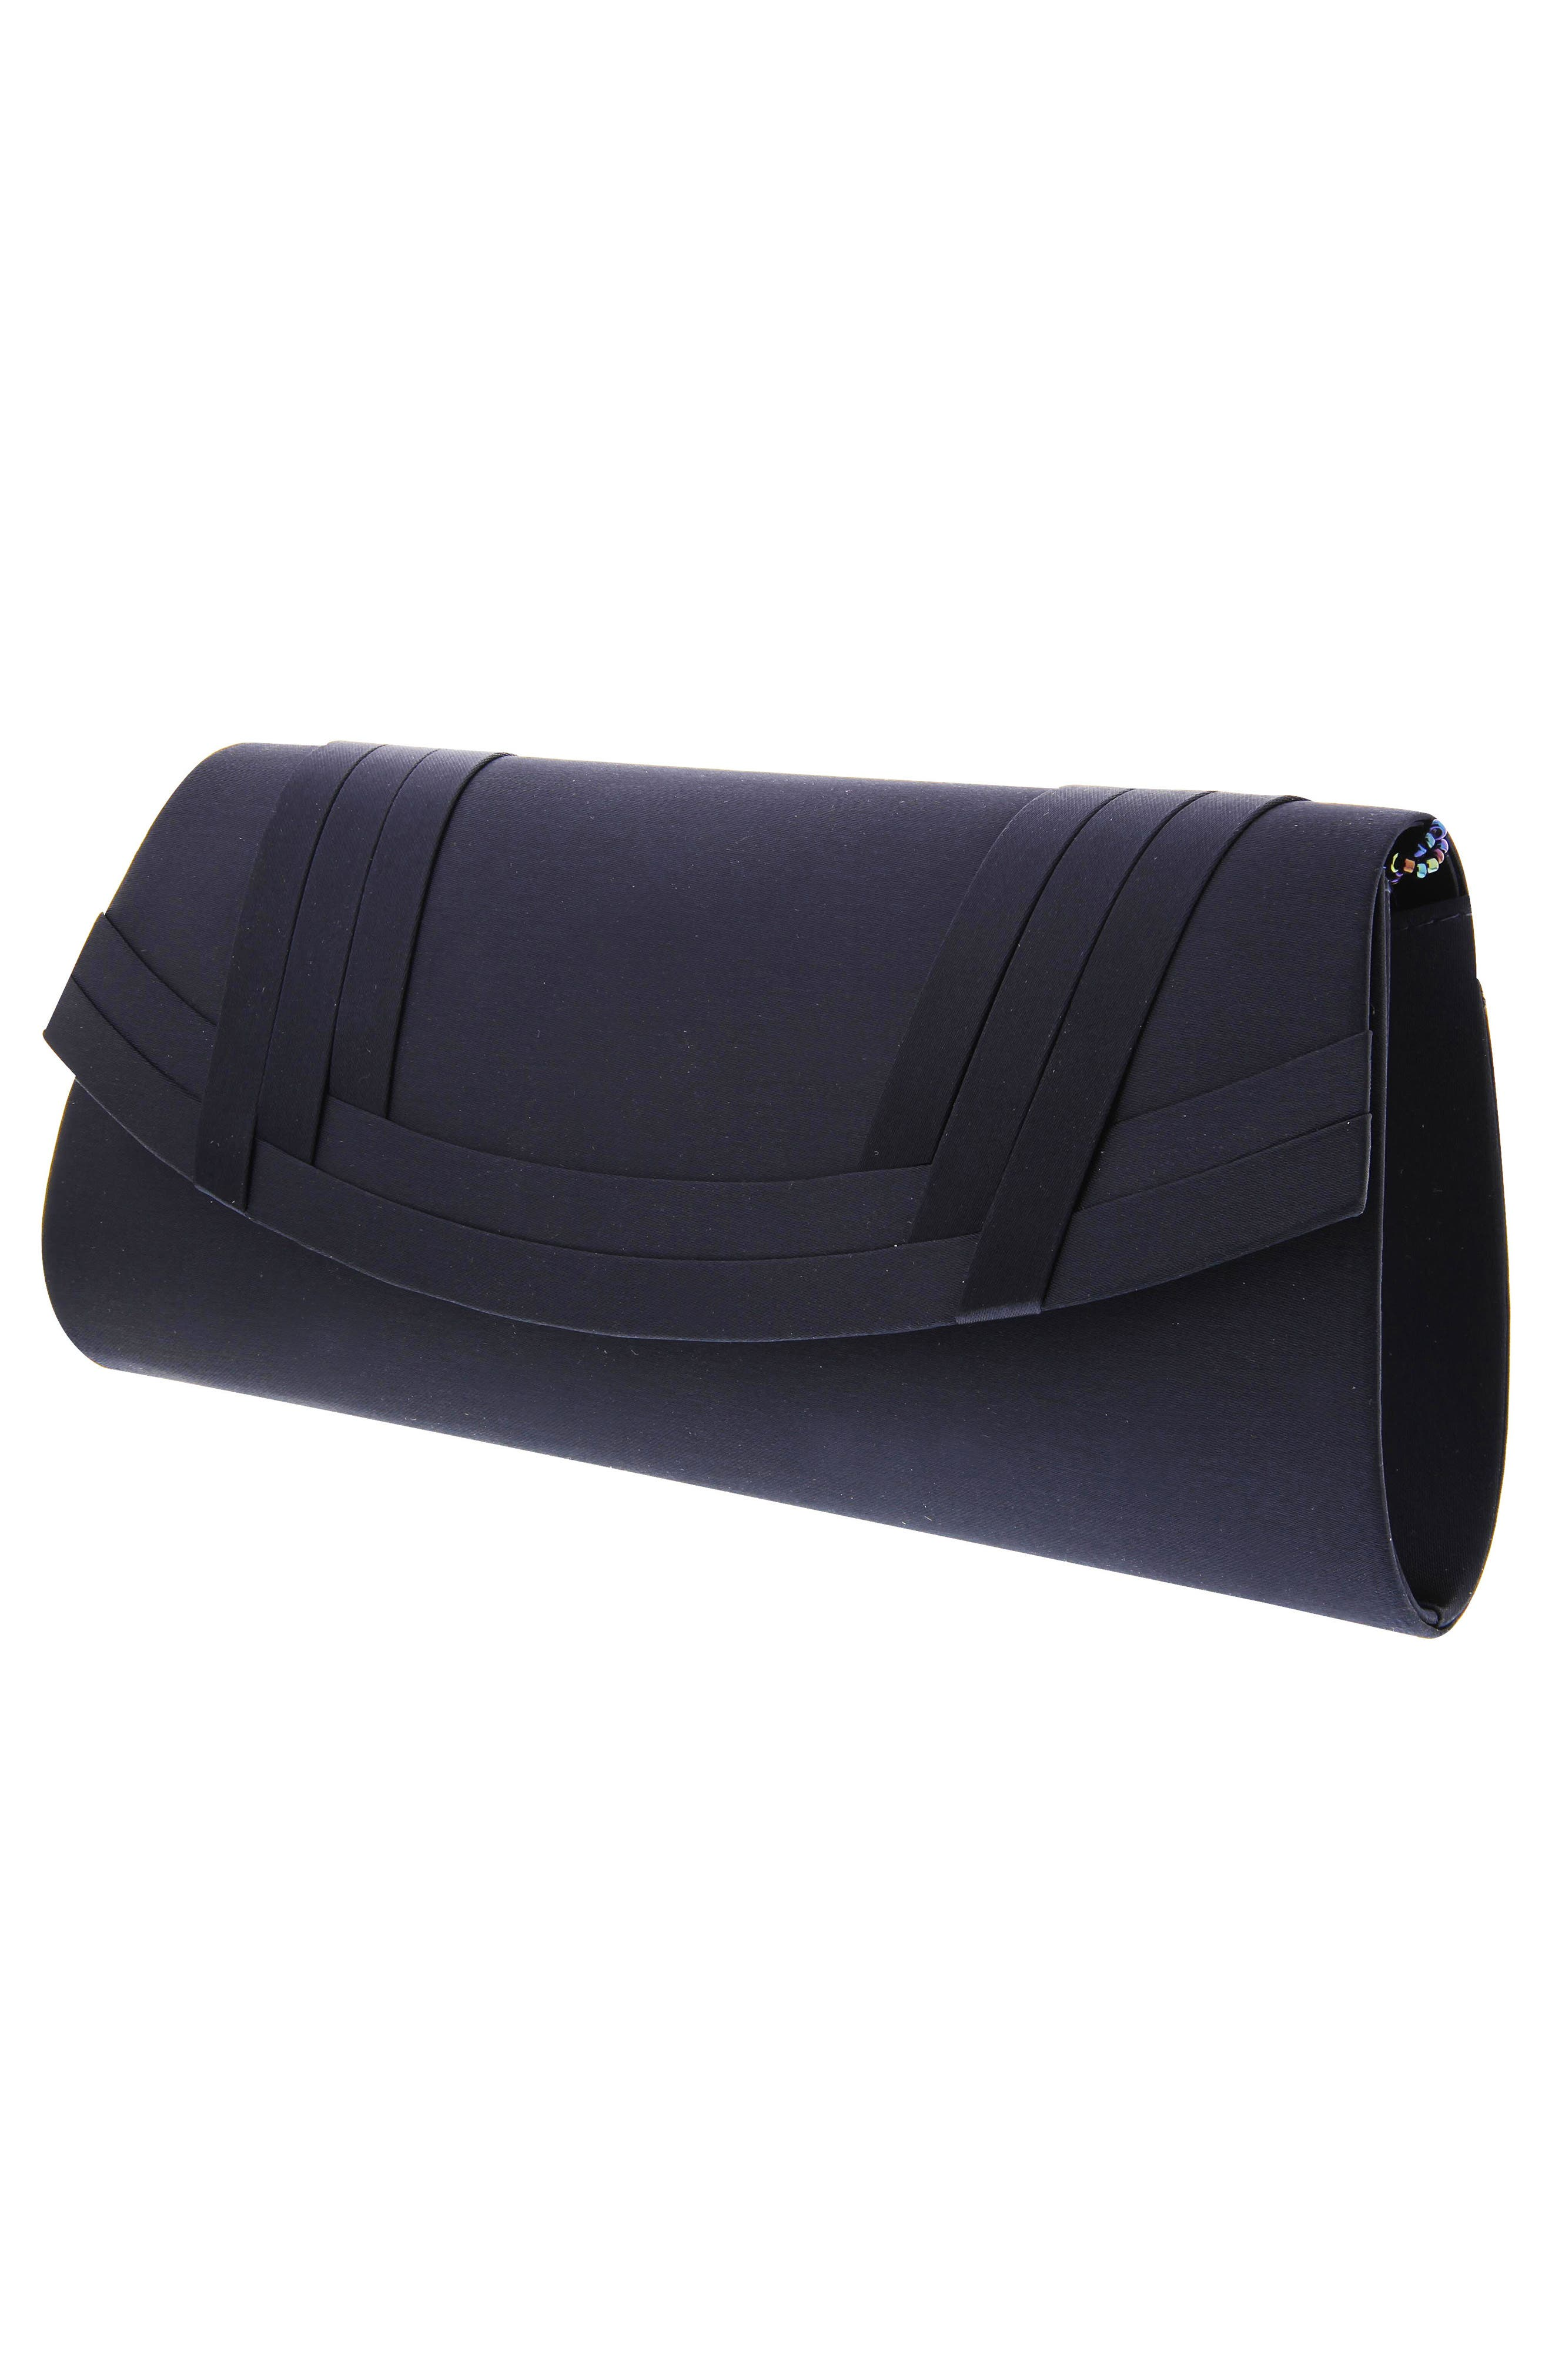 Avis Pleated Classic Clutch,                             Alternate thumbnail 5, color,                             NAVY NOBLE SATIN